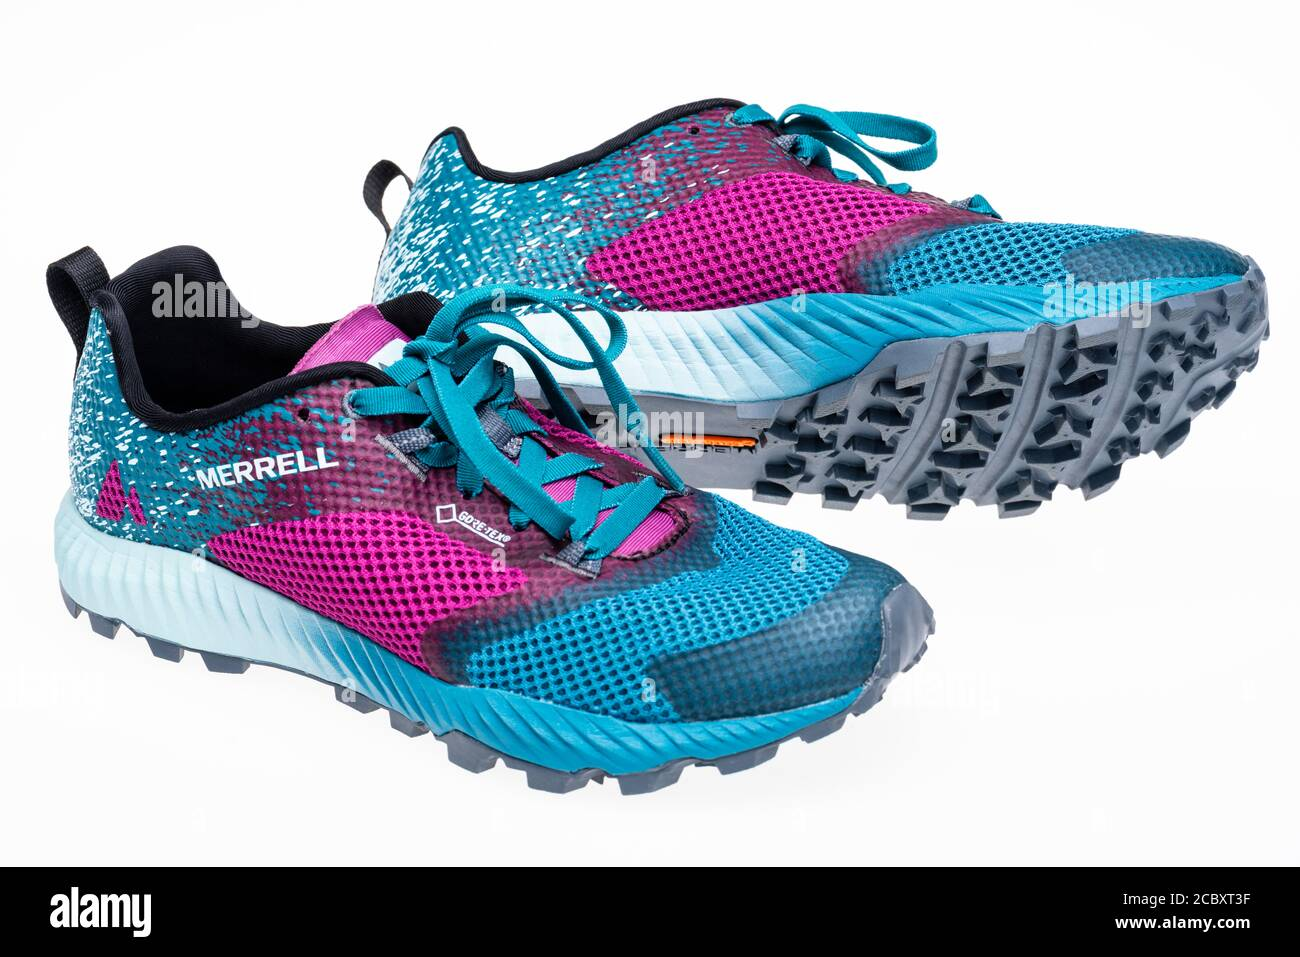 Colourful Merrell ladies' trainers with